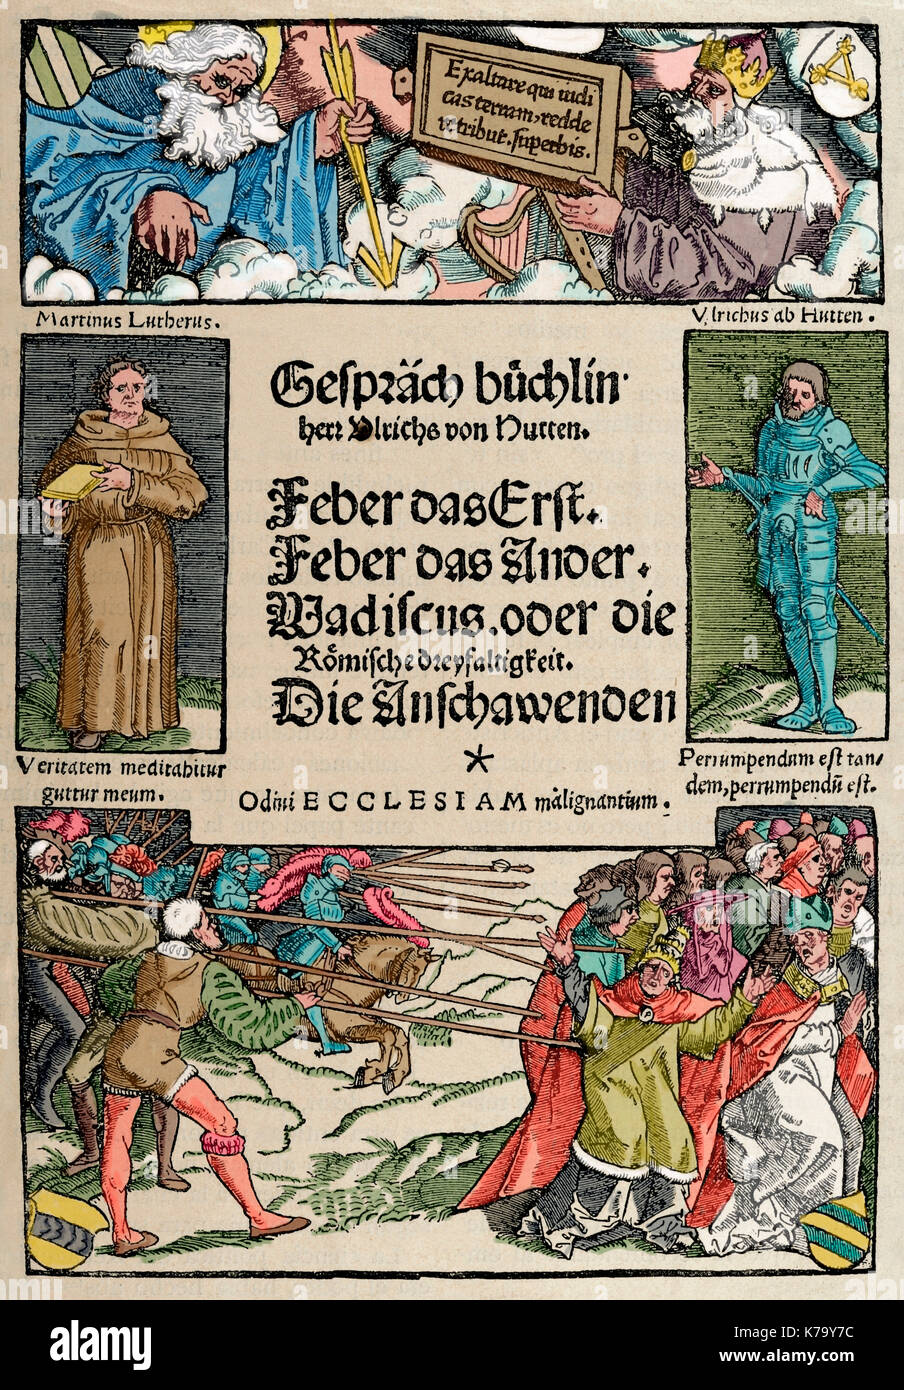 Ulrich von Hutten (1488-1523). German writer and theologian. Booklet of Conversations. Cover. Facsimile. Engraving in The History of Germany, 1882. Colored. - Stock Image